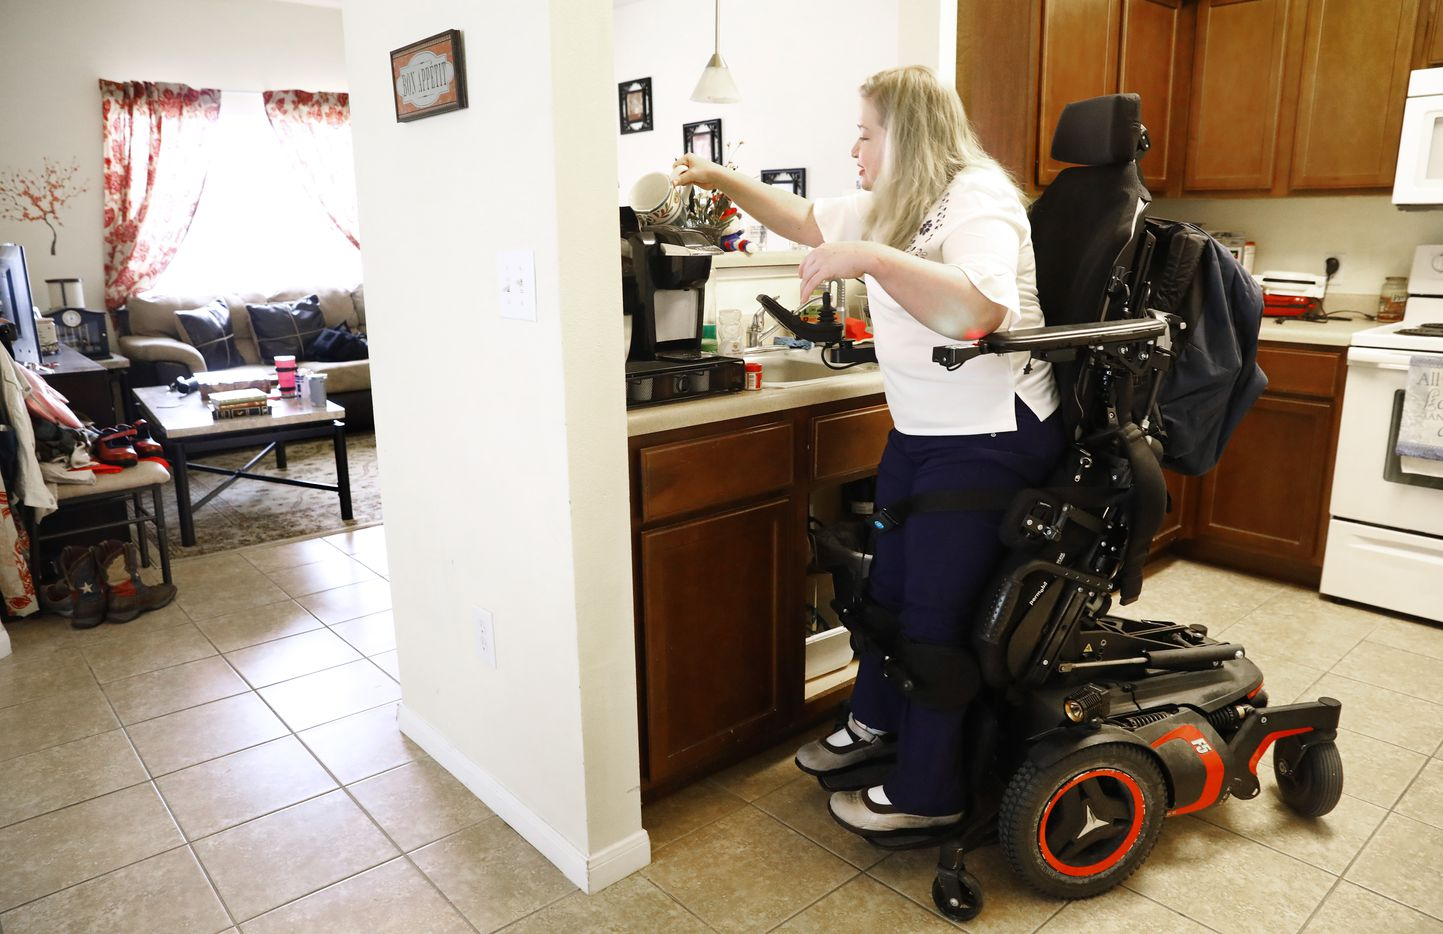 Jessica Lukefahr makes a mug of tea in her powered wheelchair with standing function. It took Lukefahr several years and a few court battles to eventually be given the chair, which allows her safety, independence and mobility. Her case exemplifies the arbitrary and unfair nature of how the state handles Medicaid appeals of denied care.